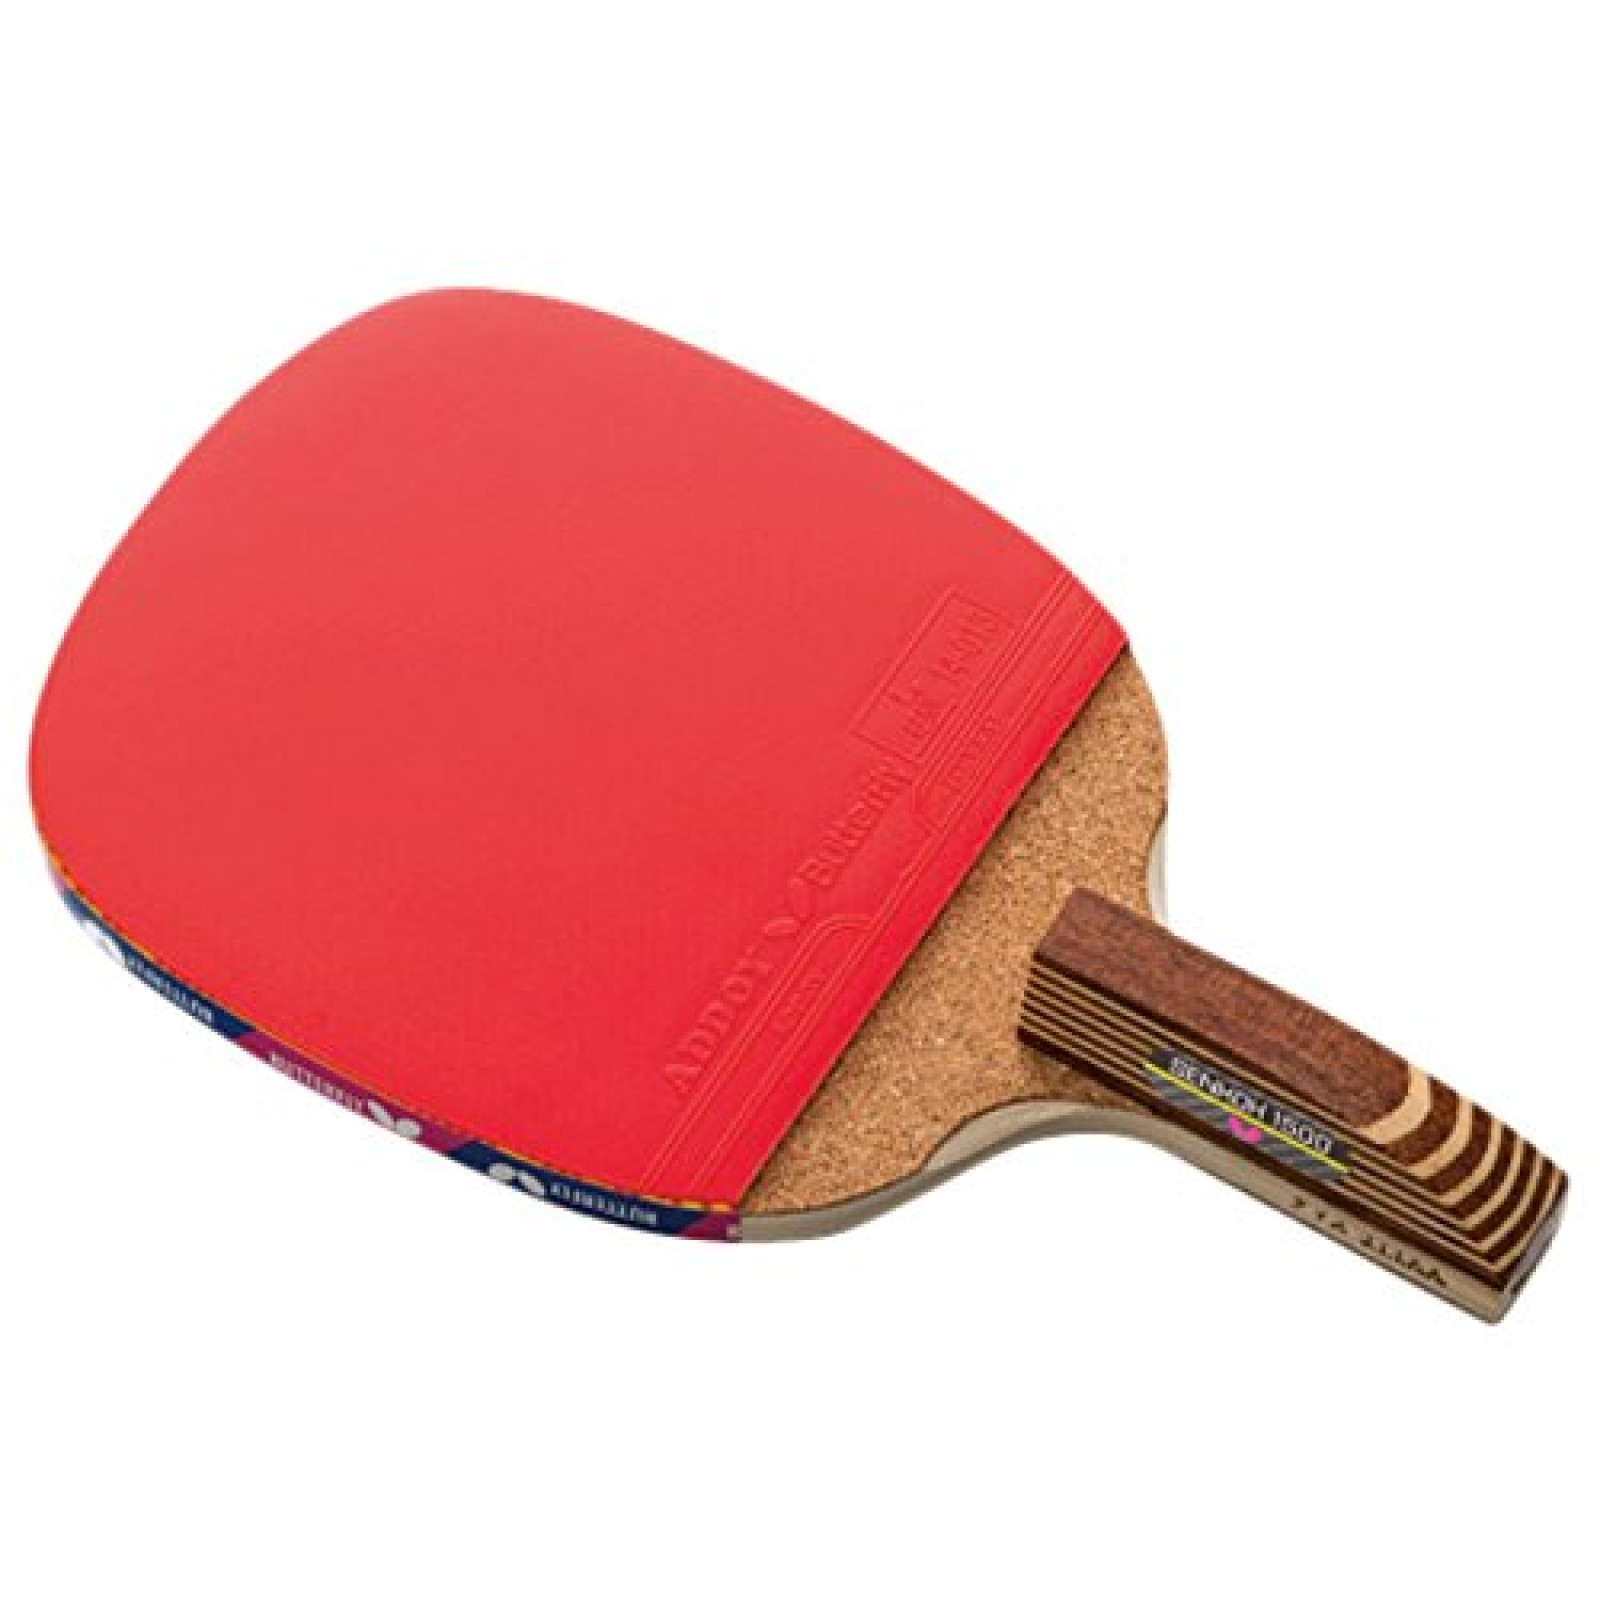 Butterfly Senkoh 1500 Penhold Table Tennis Racket with Rubber and 2 ...